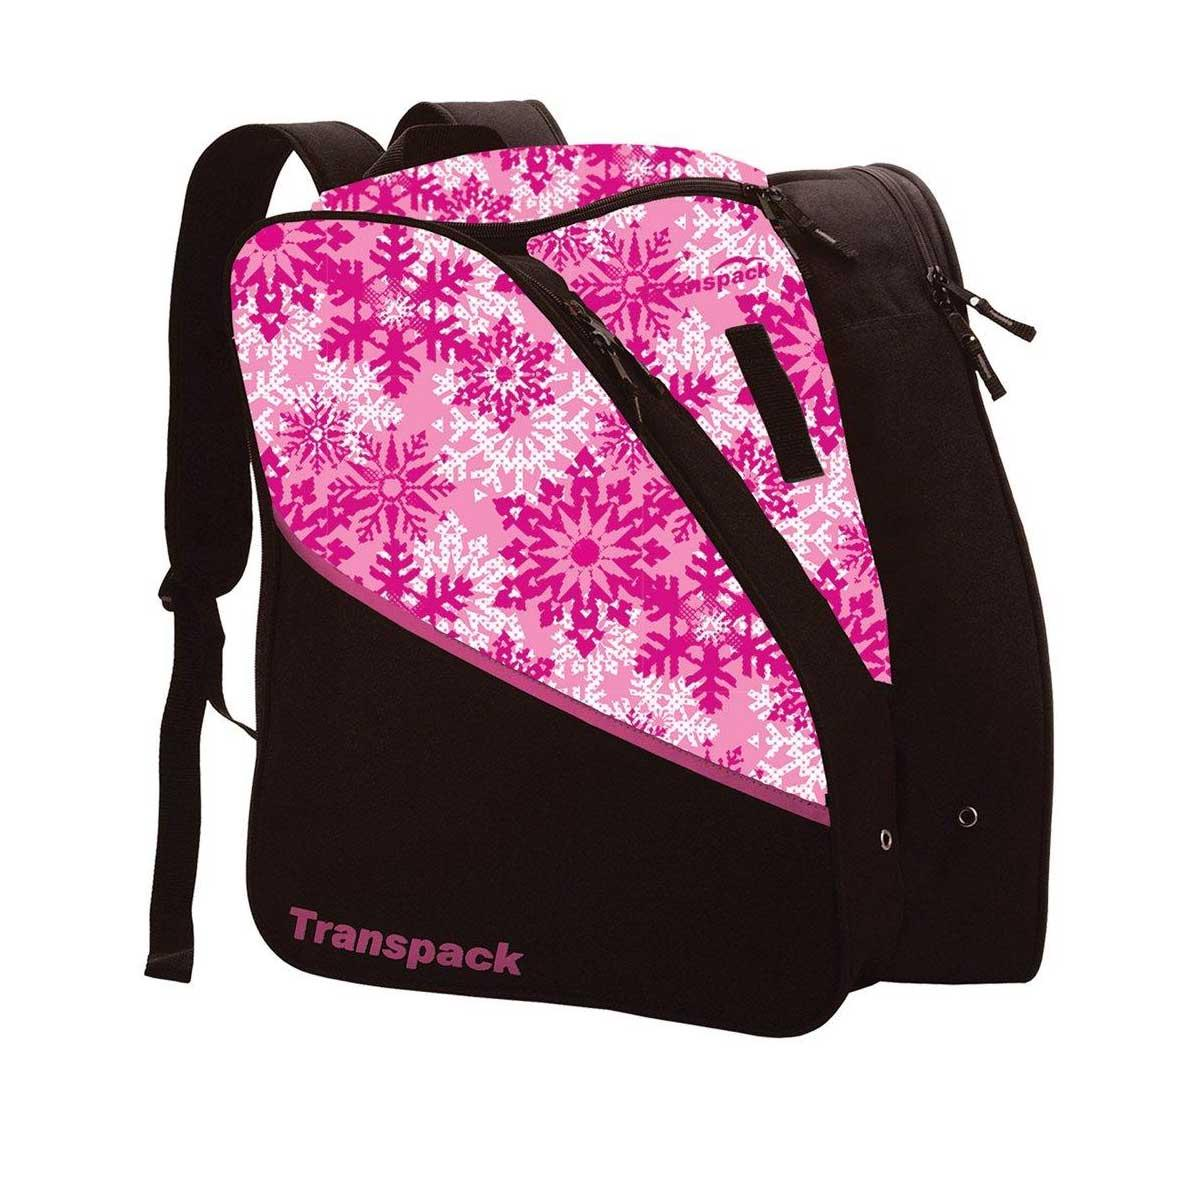 Transpack Kids' Edge Jr. Print Boot Bag in Pink Snowflake